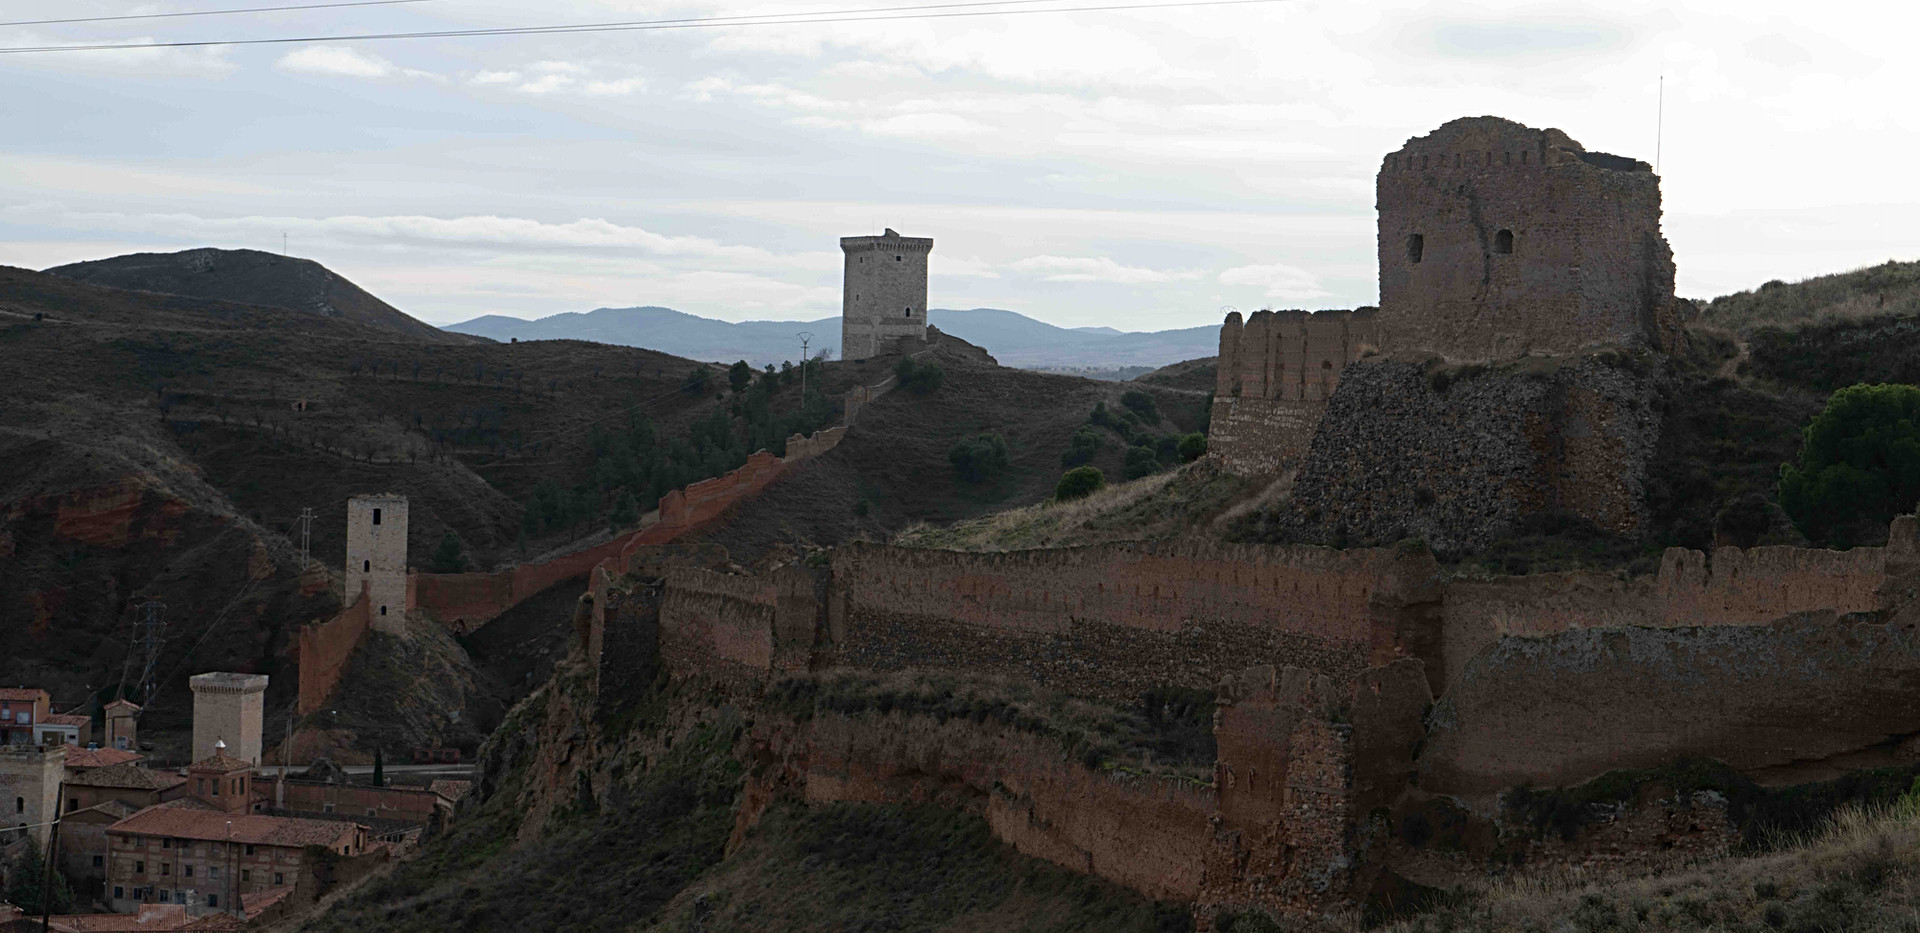 Murallas y torres / Walls and towers